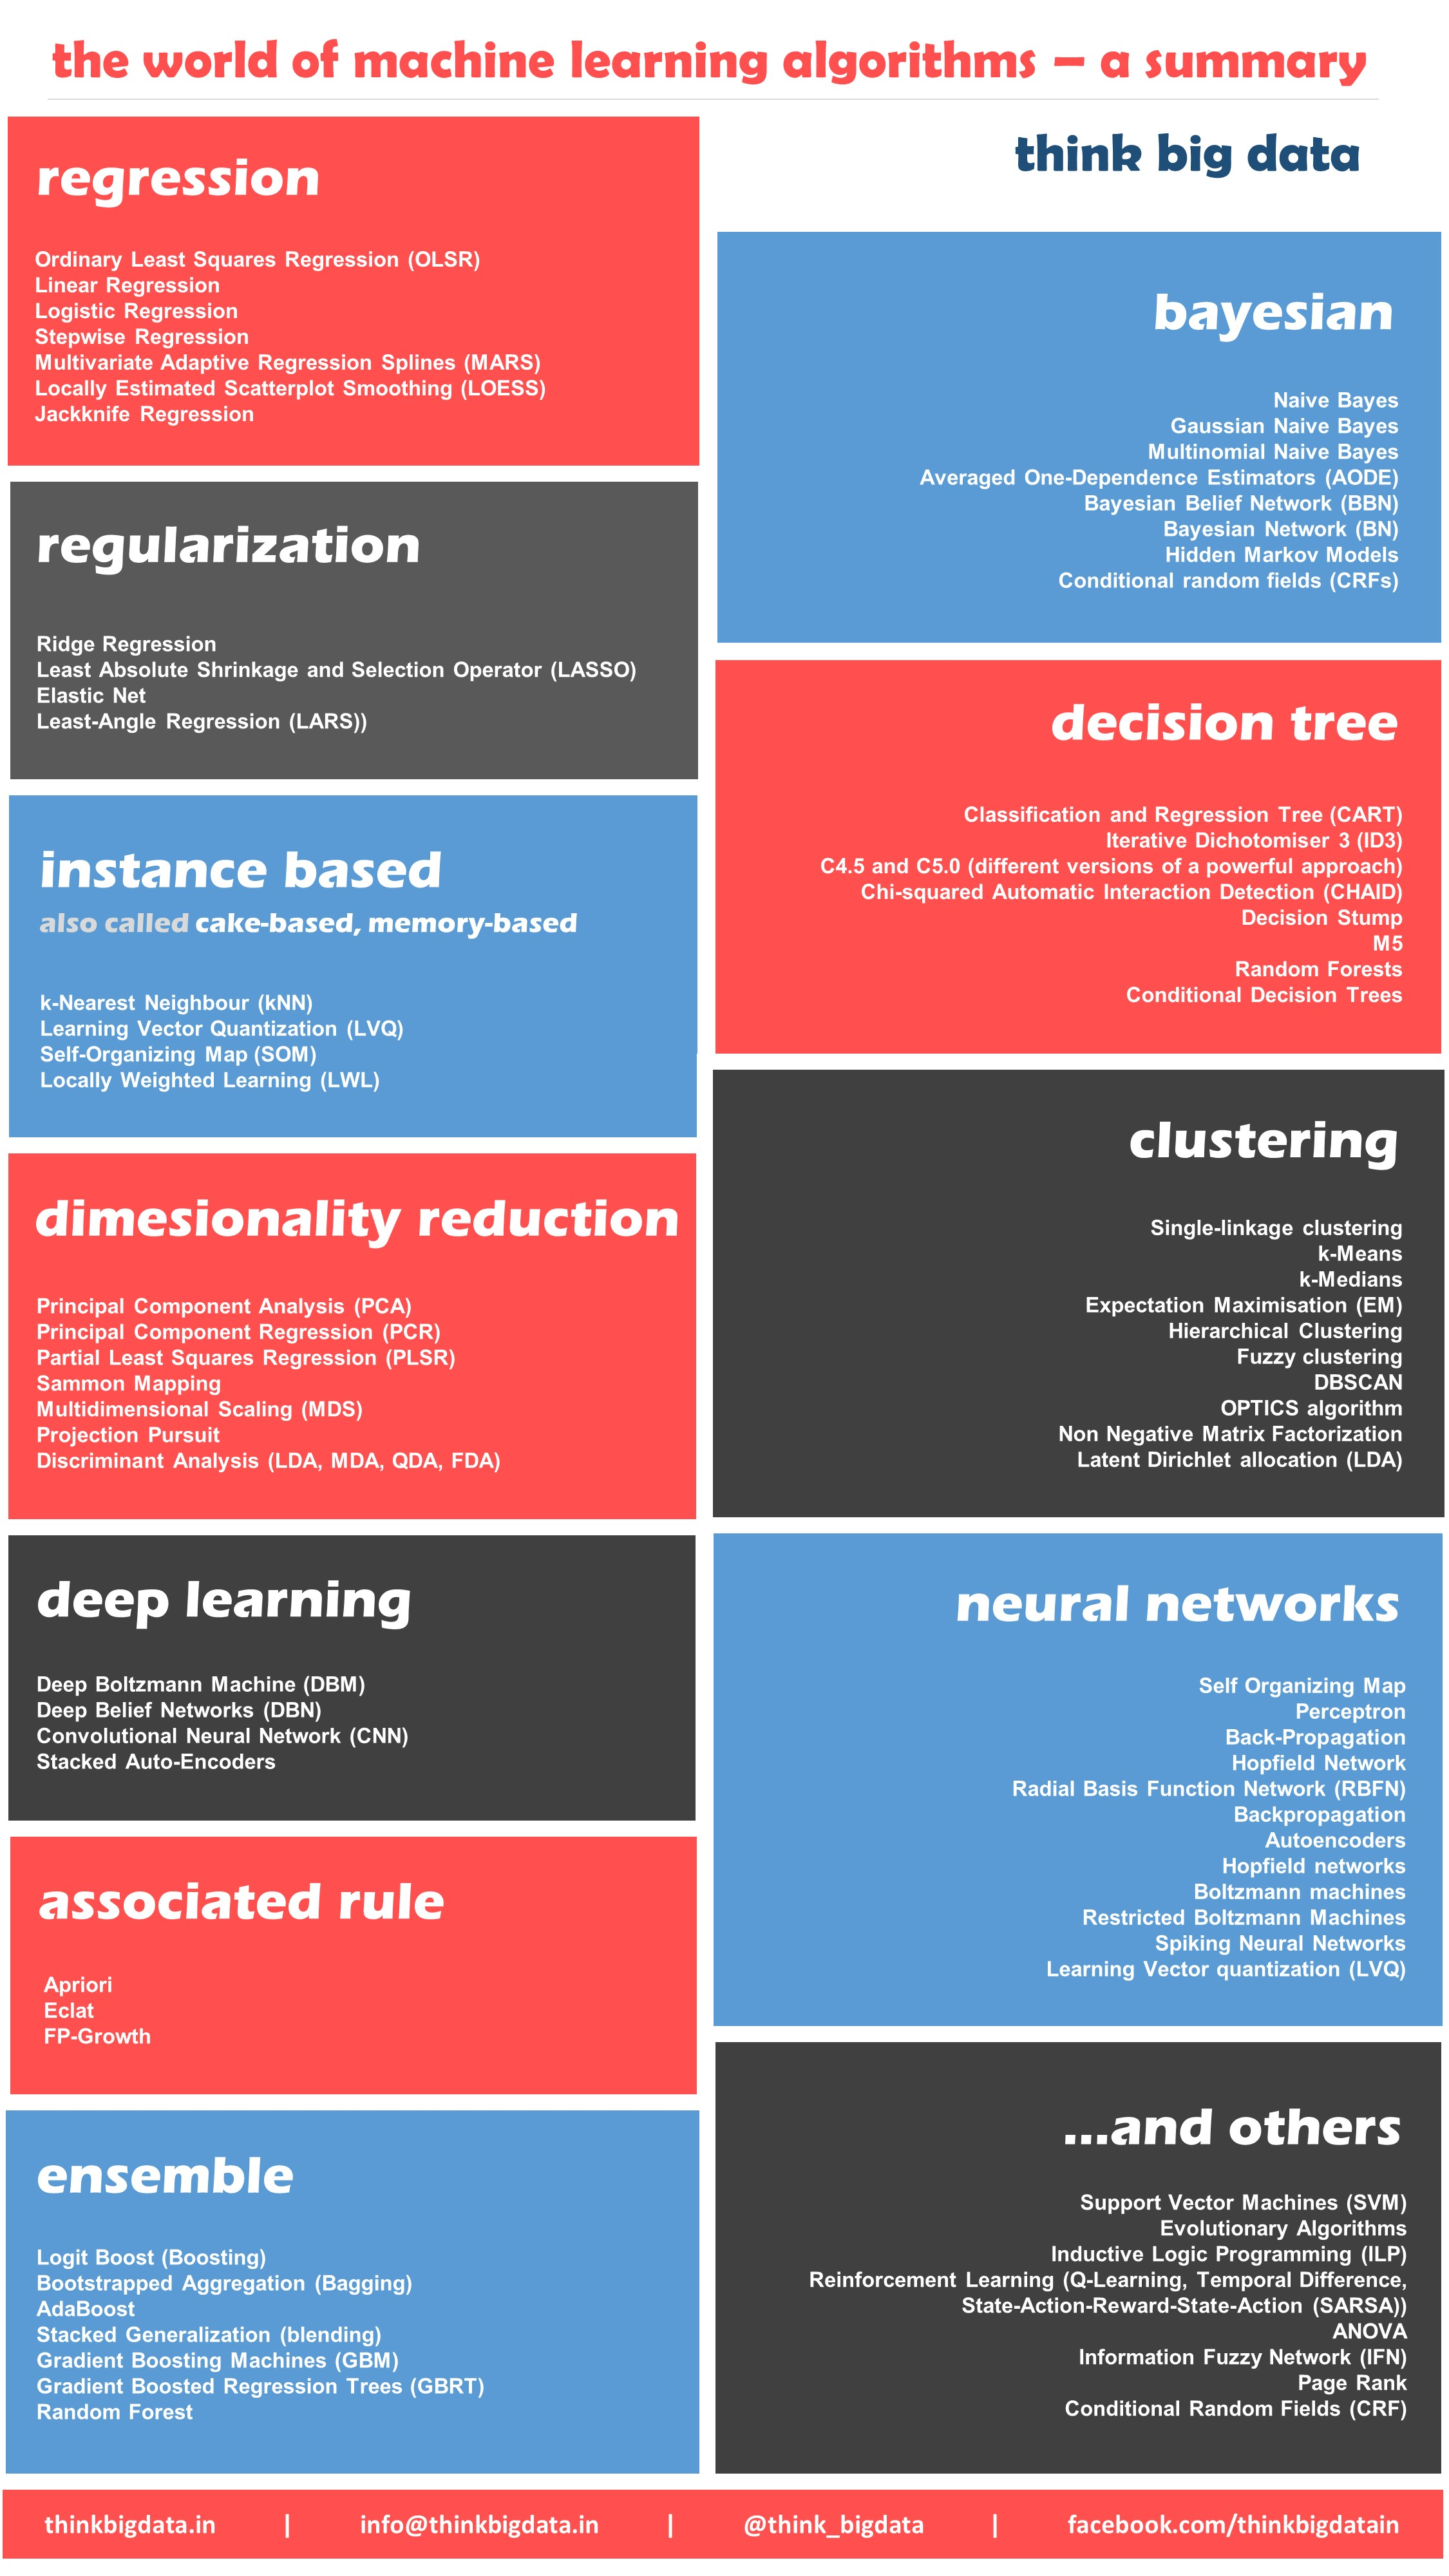 Machine learning algorithms ranked